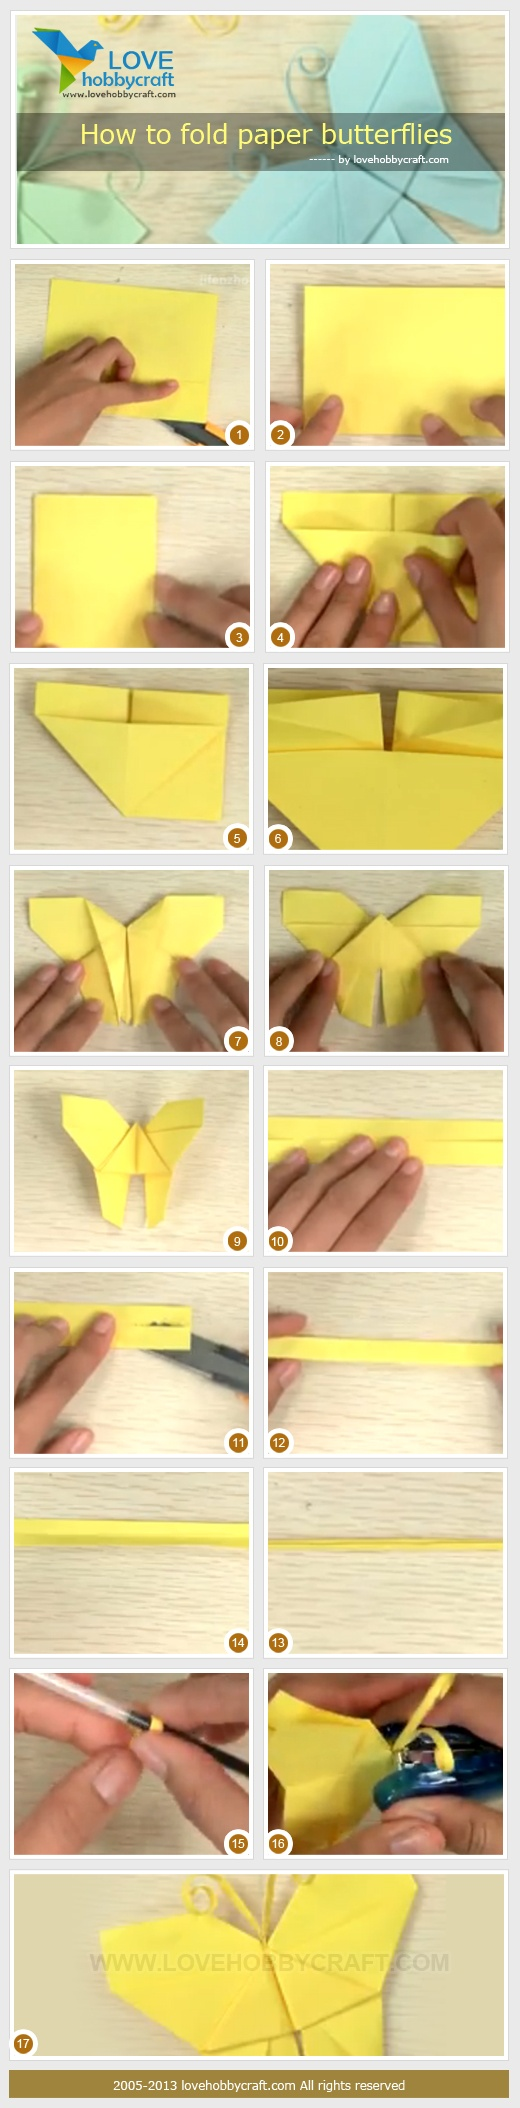 How-to-fold-paper-butterflies